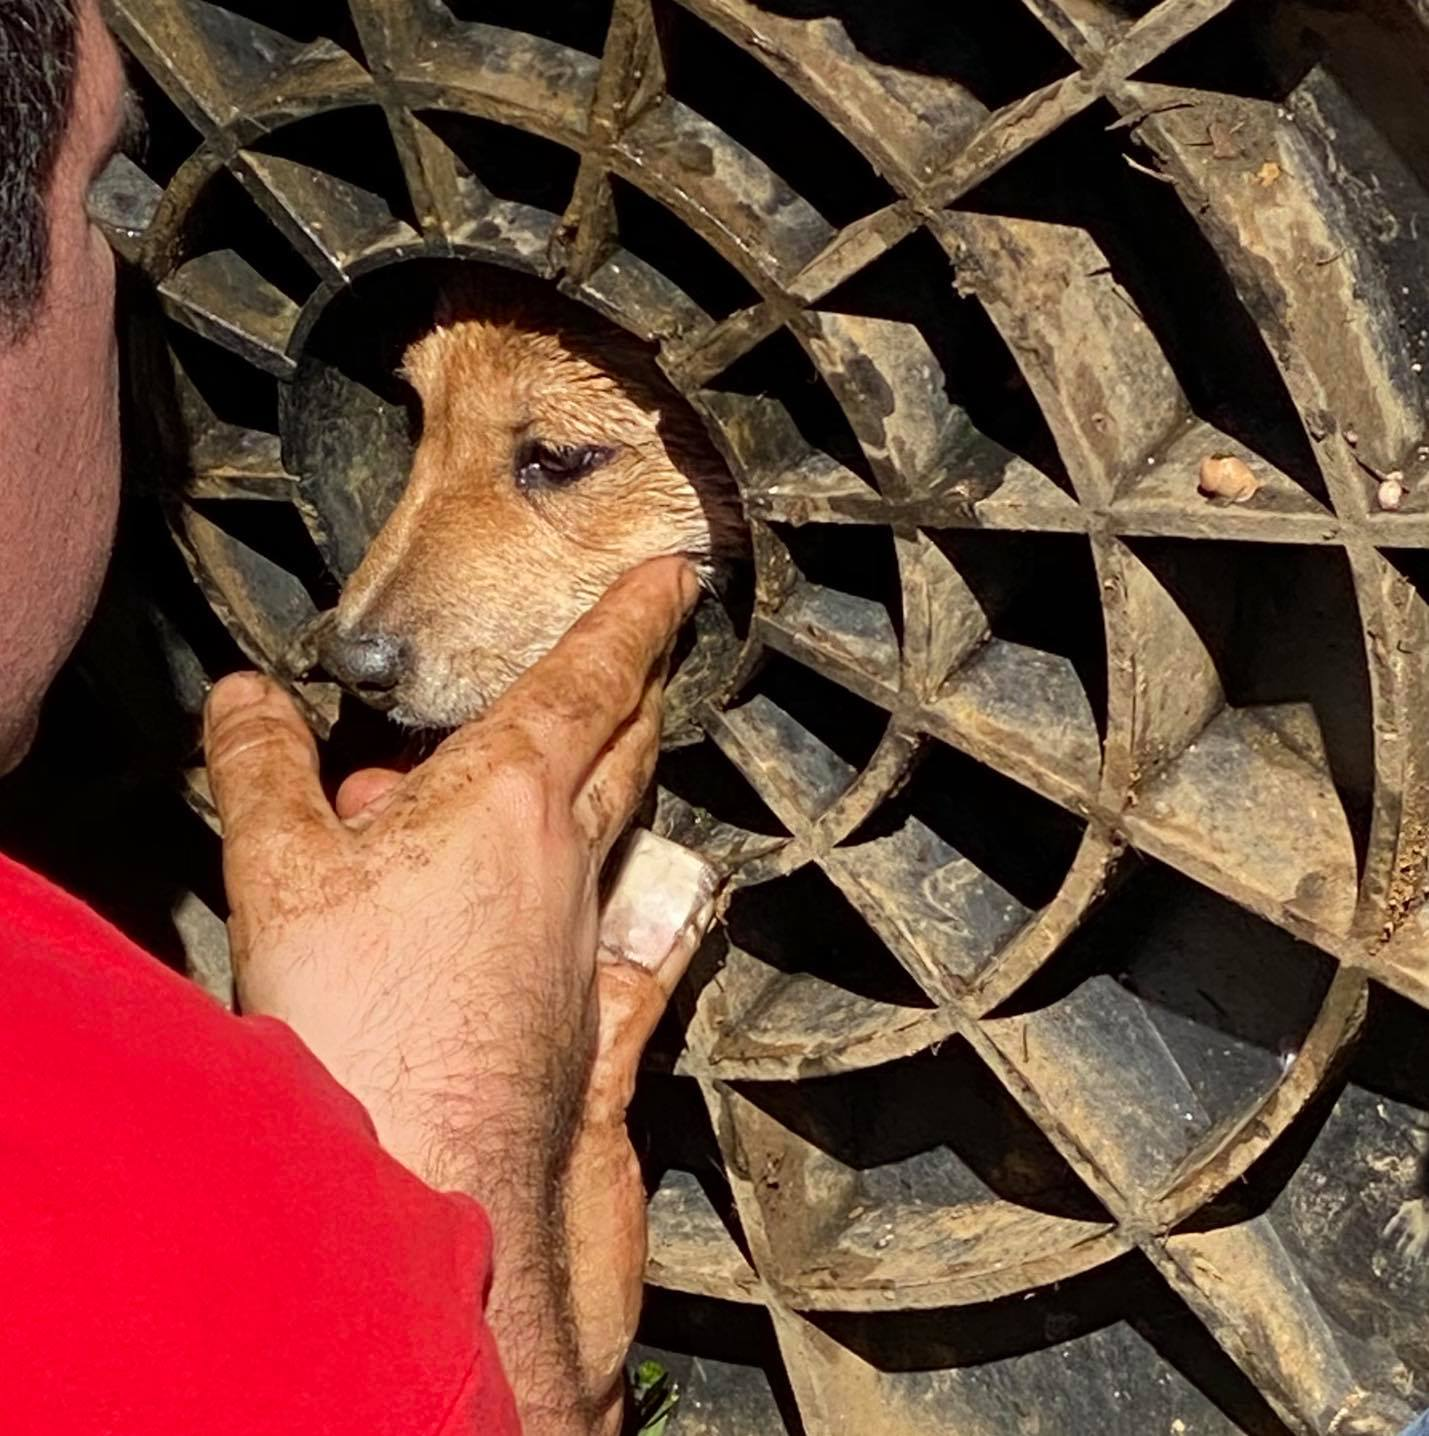 Dog stuck in drain lid rescued by firefighters